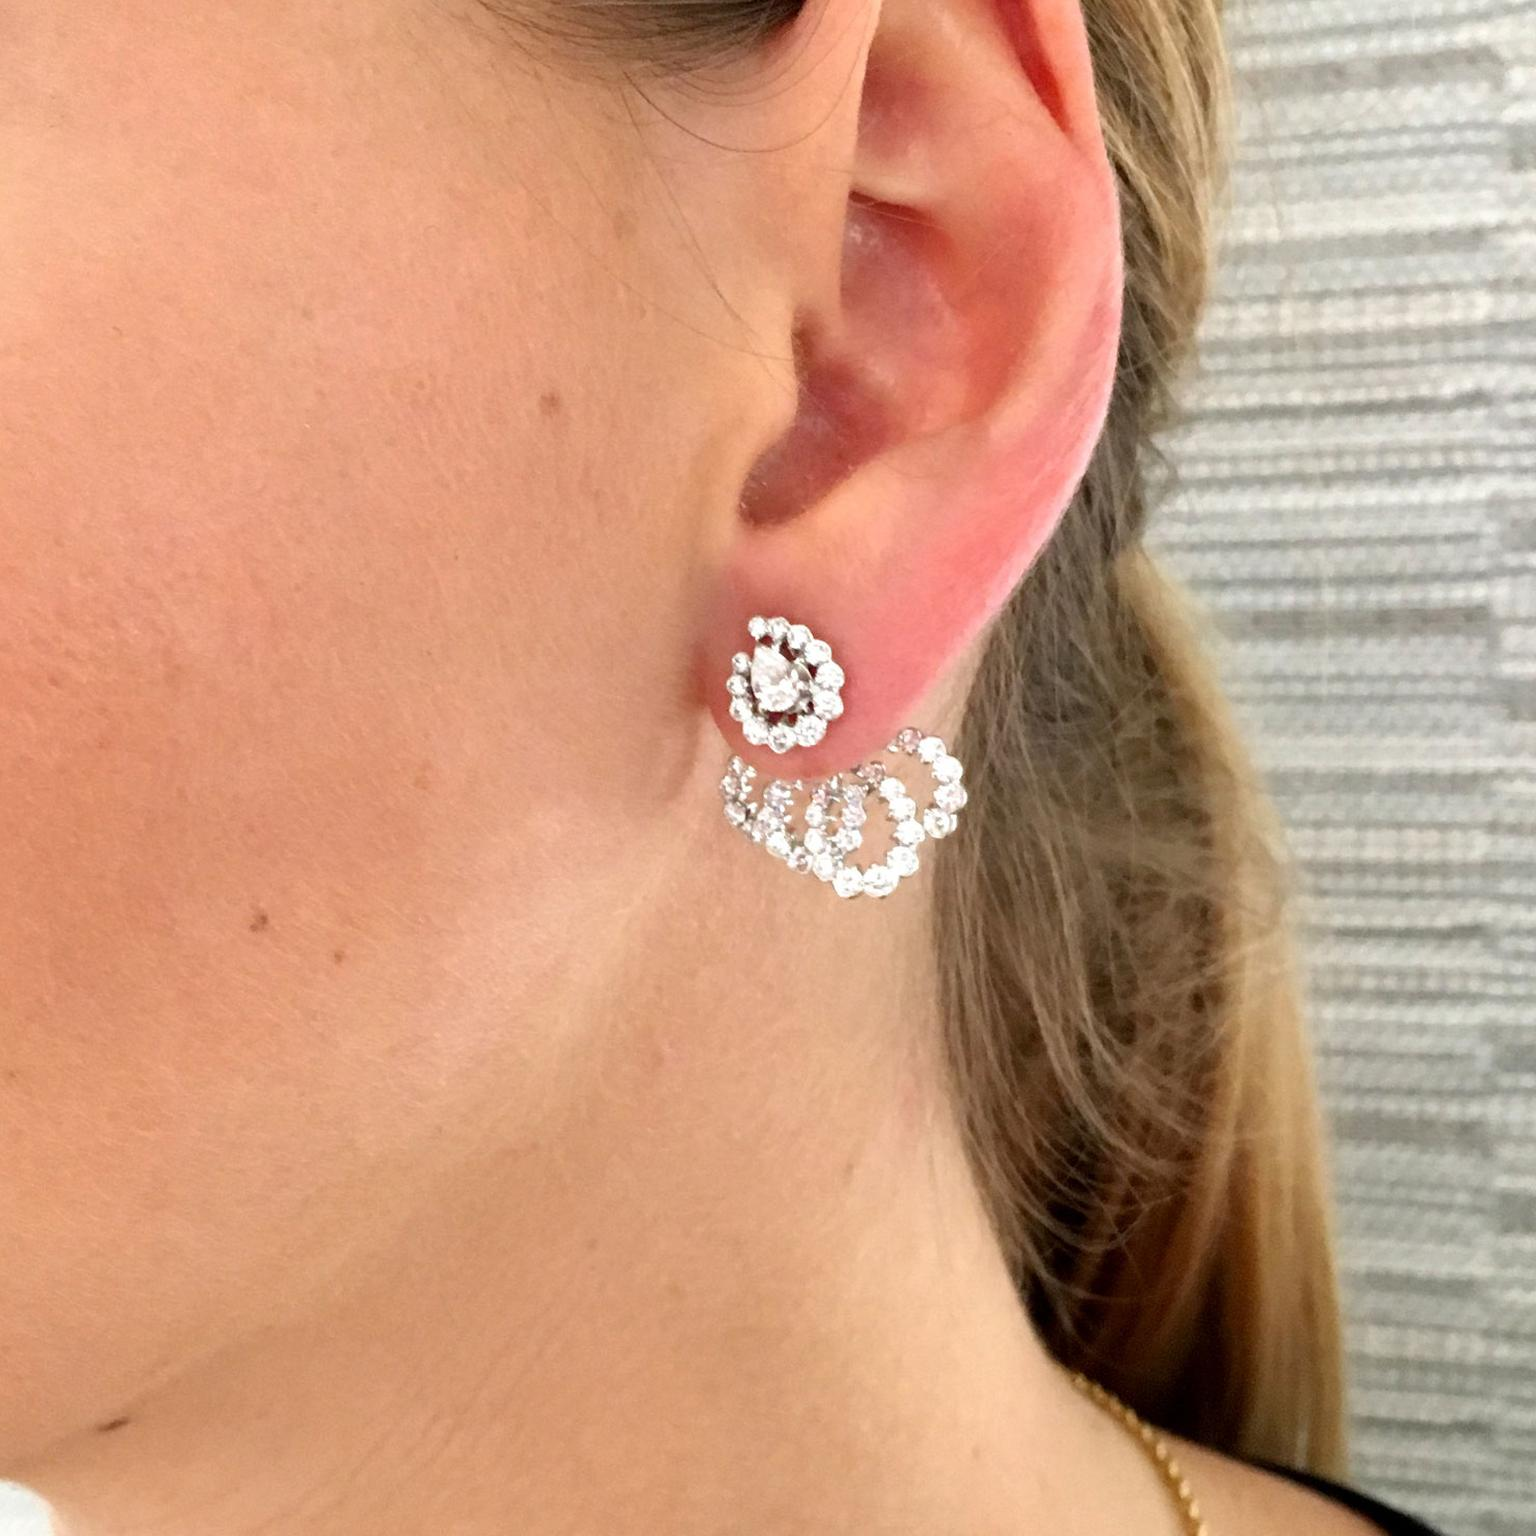 Dior Millieu du Siècle earrings